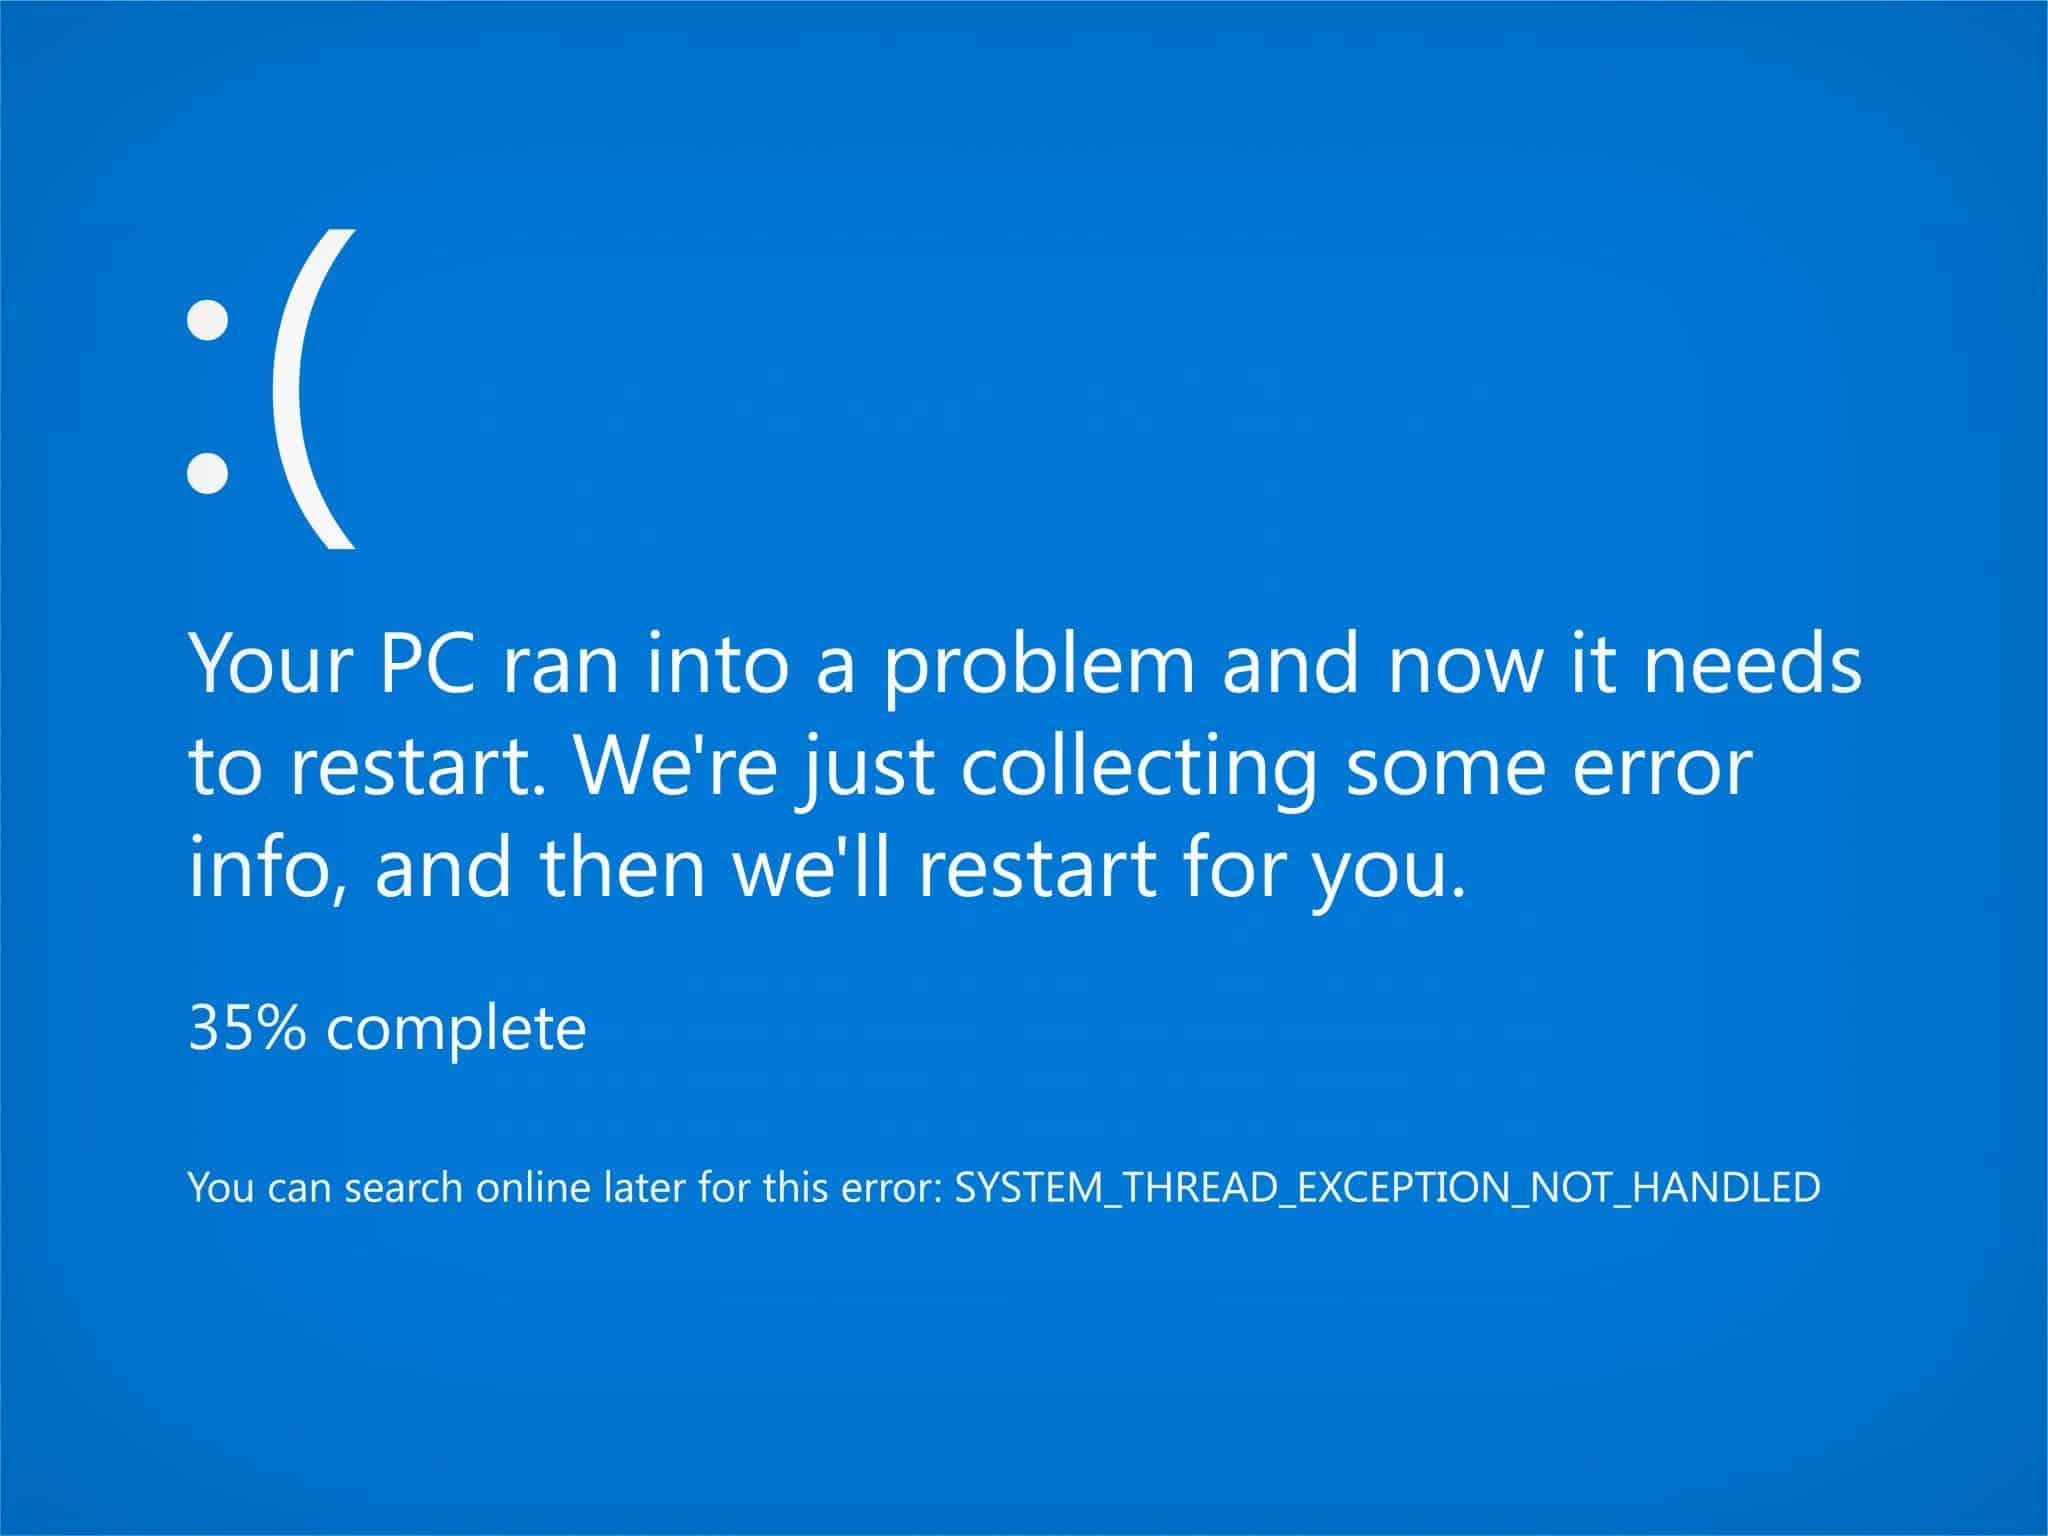 Your PC Ran Into a Problem and Needs to Restart [Fixed]